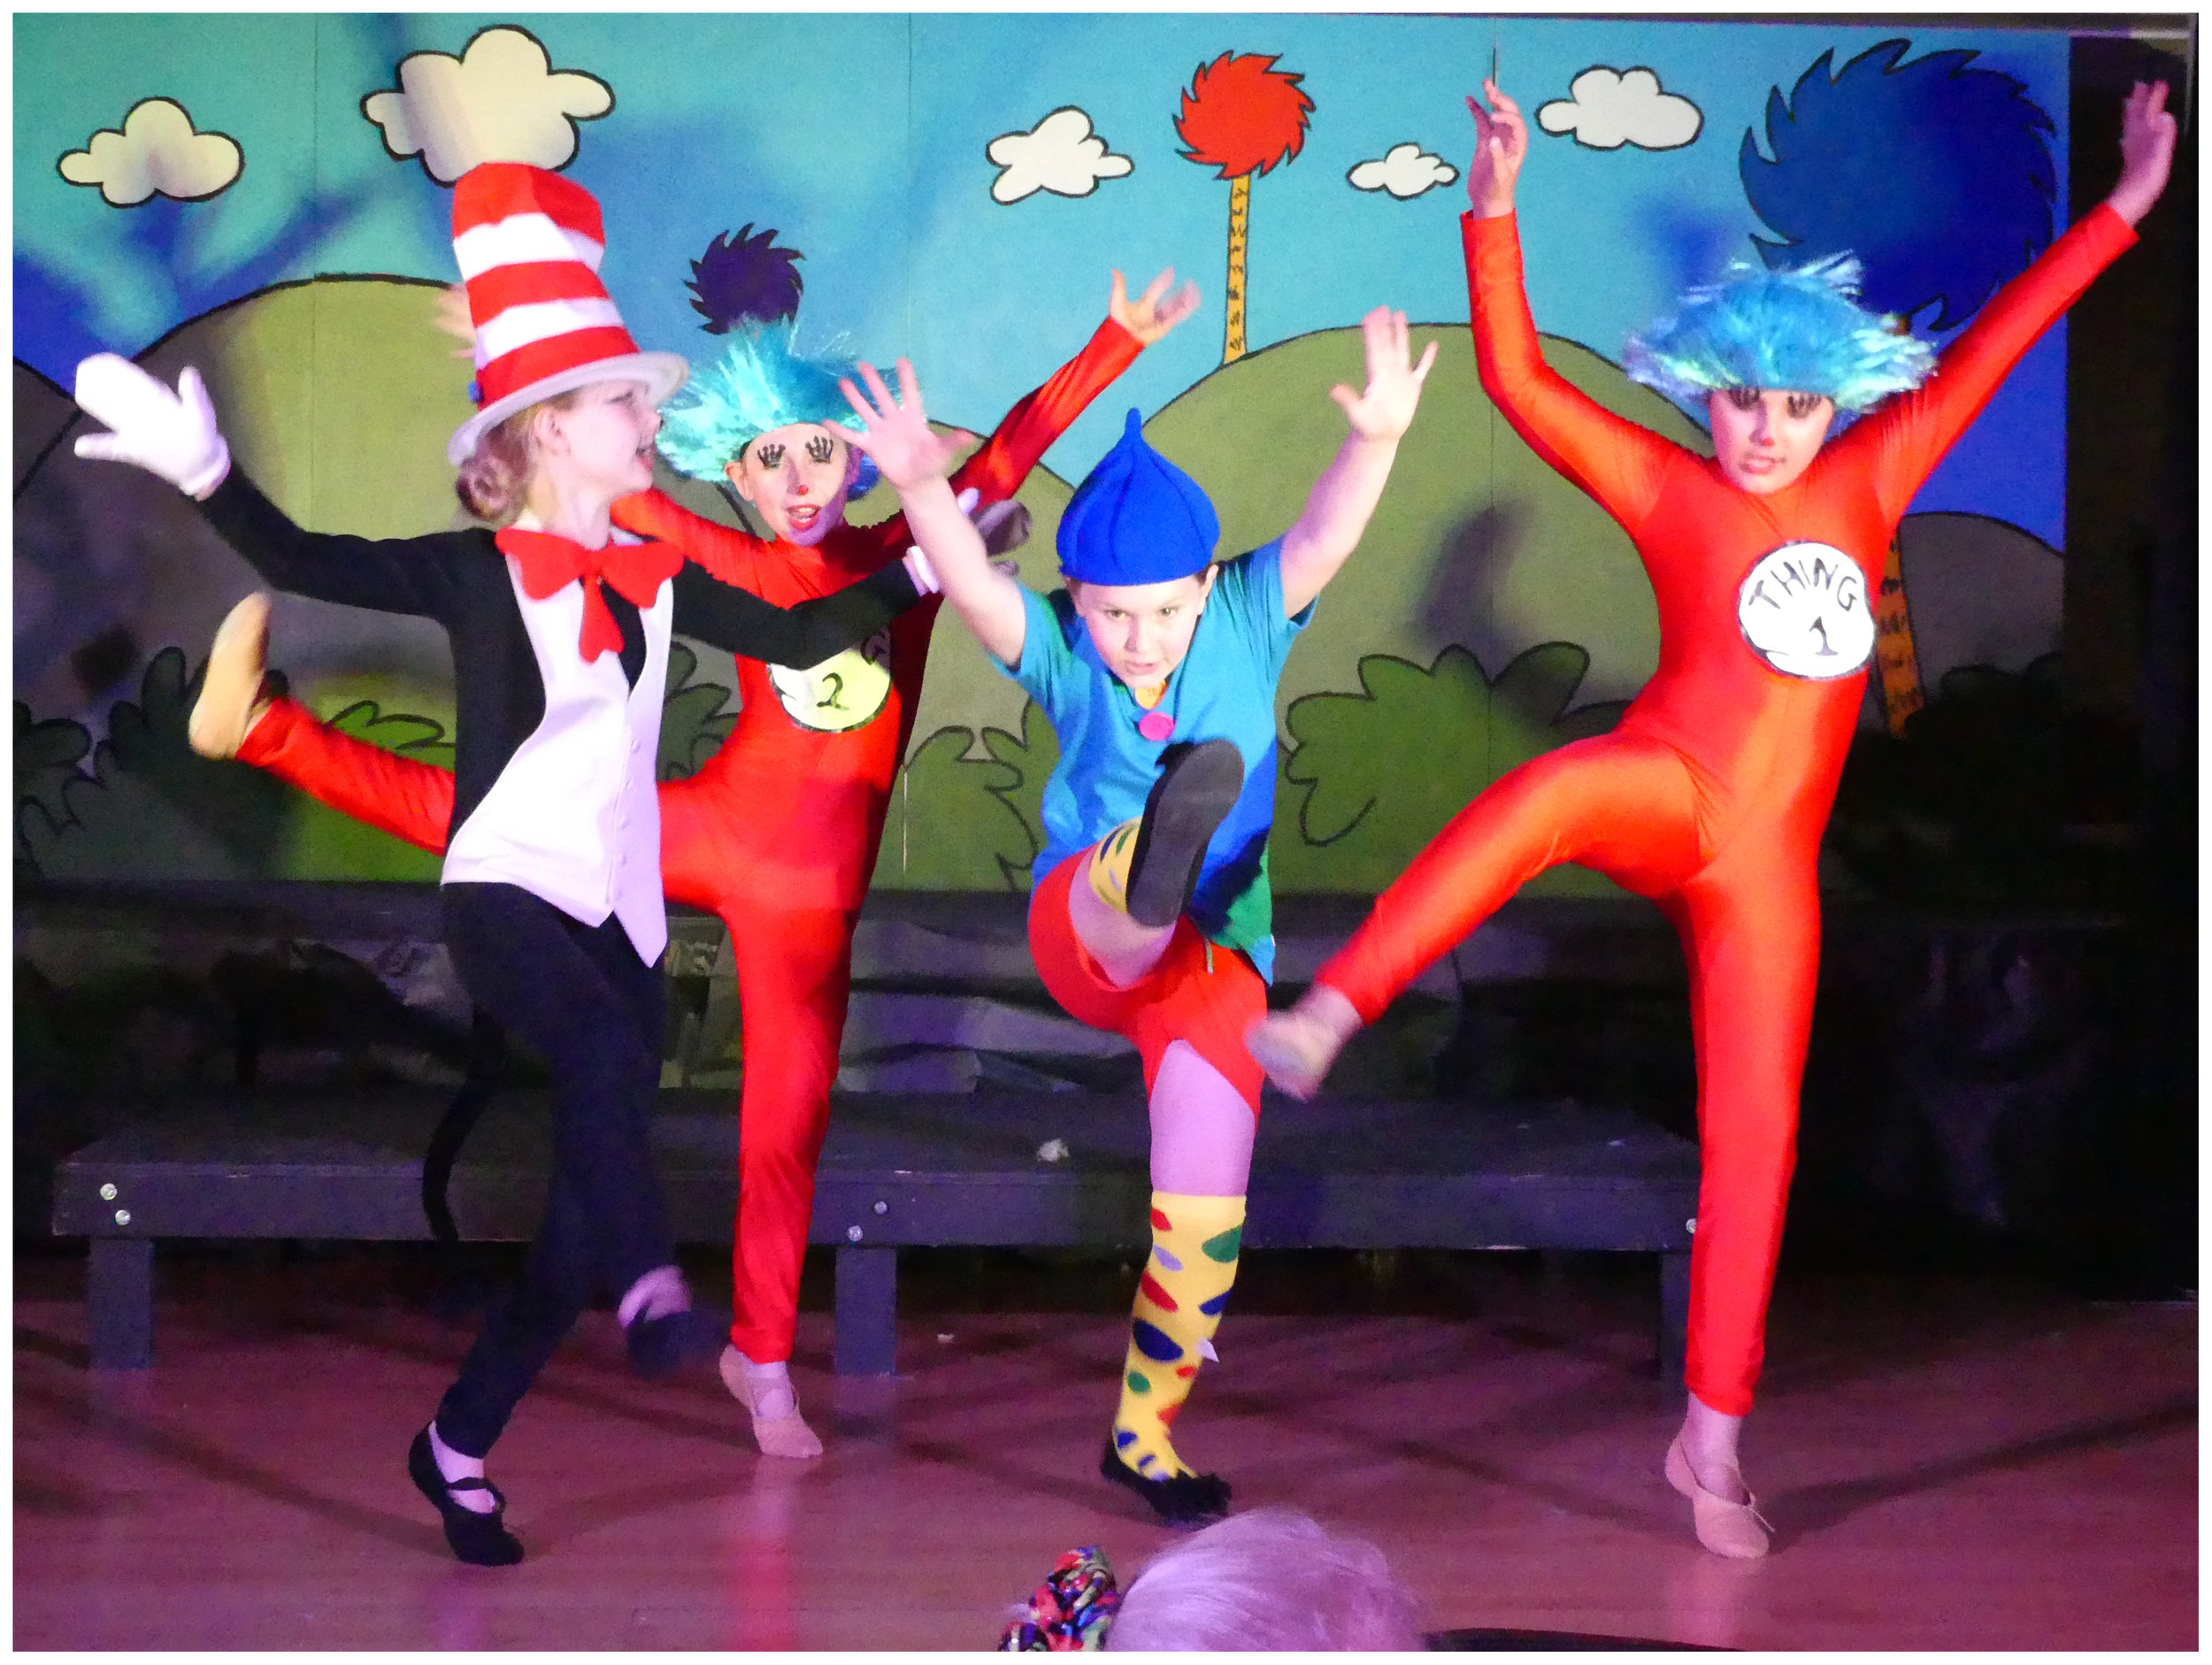 seuss kick dance.jpg